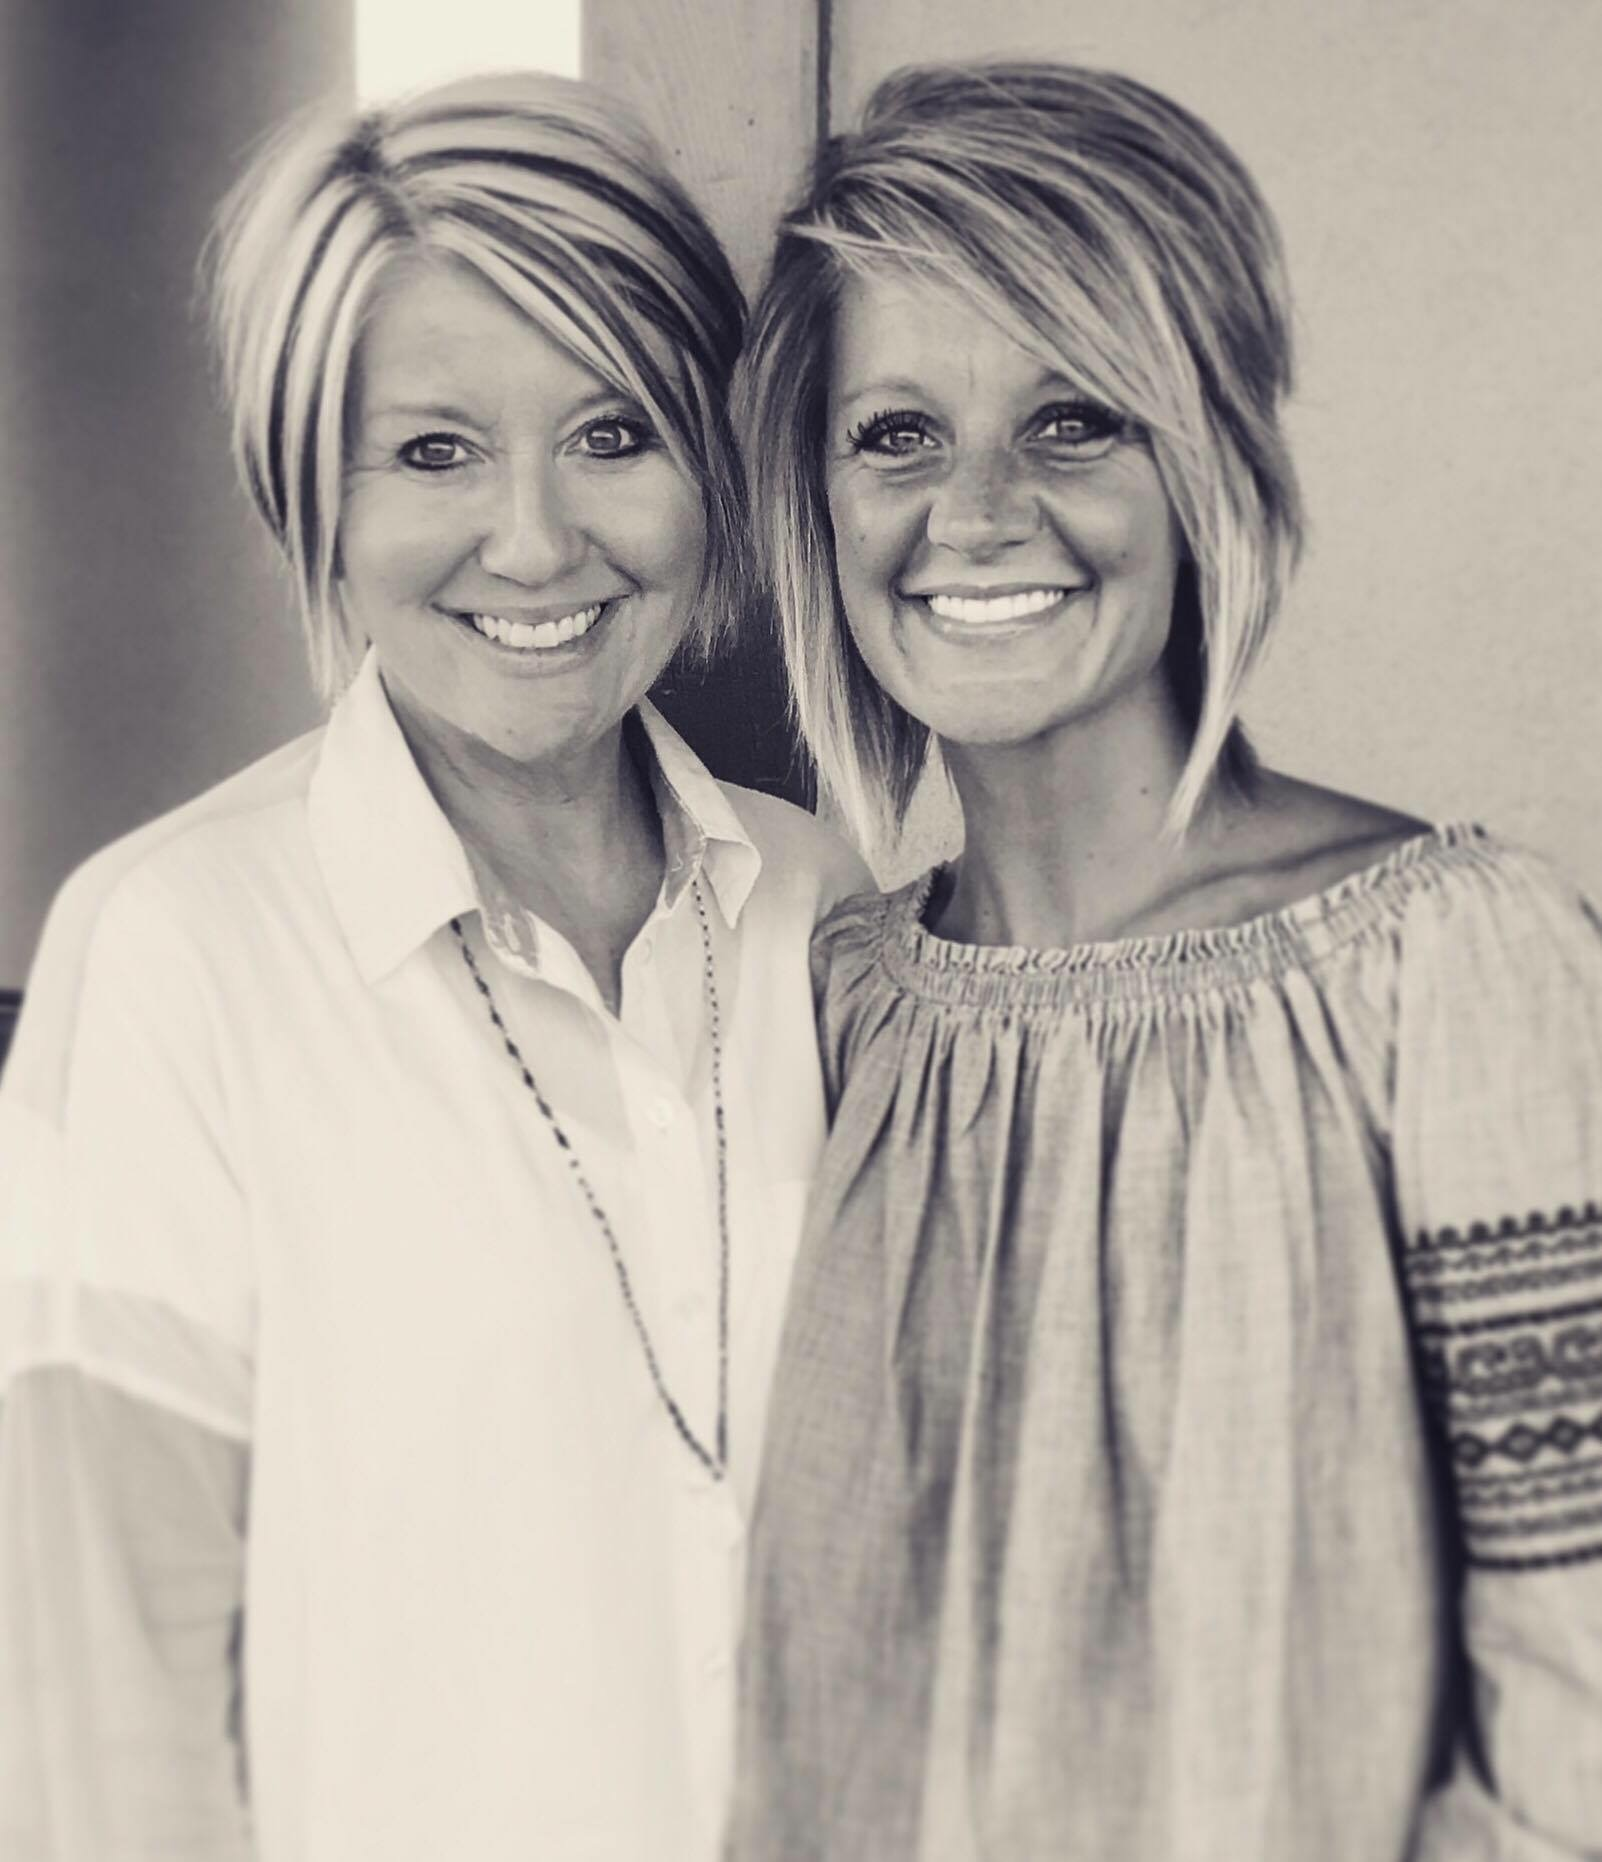 Robin Byars & Amber Byars Wilkinson pt. 1 - Davey sits down with Amanda's mother and sister to talk about their family relationship, dealing with grief, questioning God, and more.